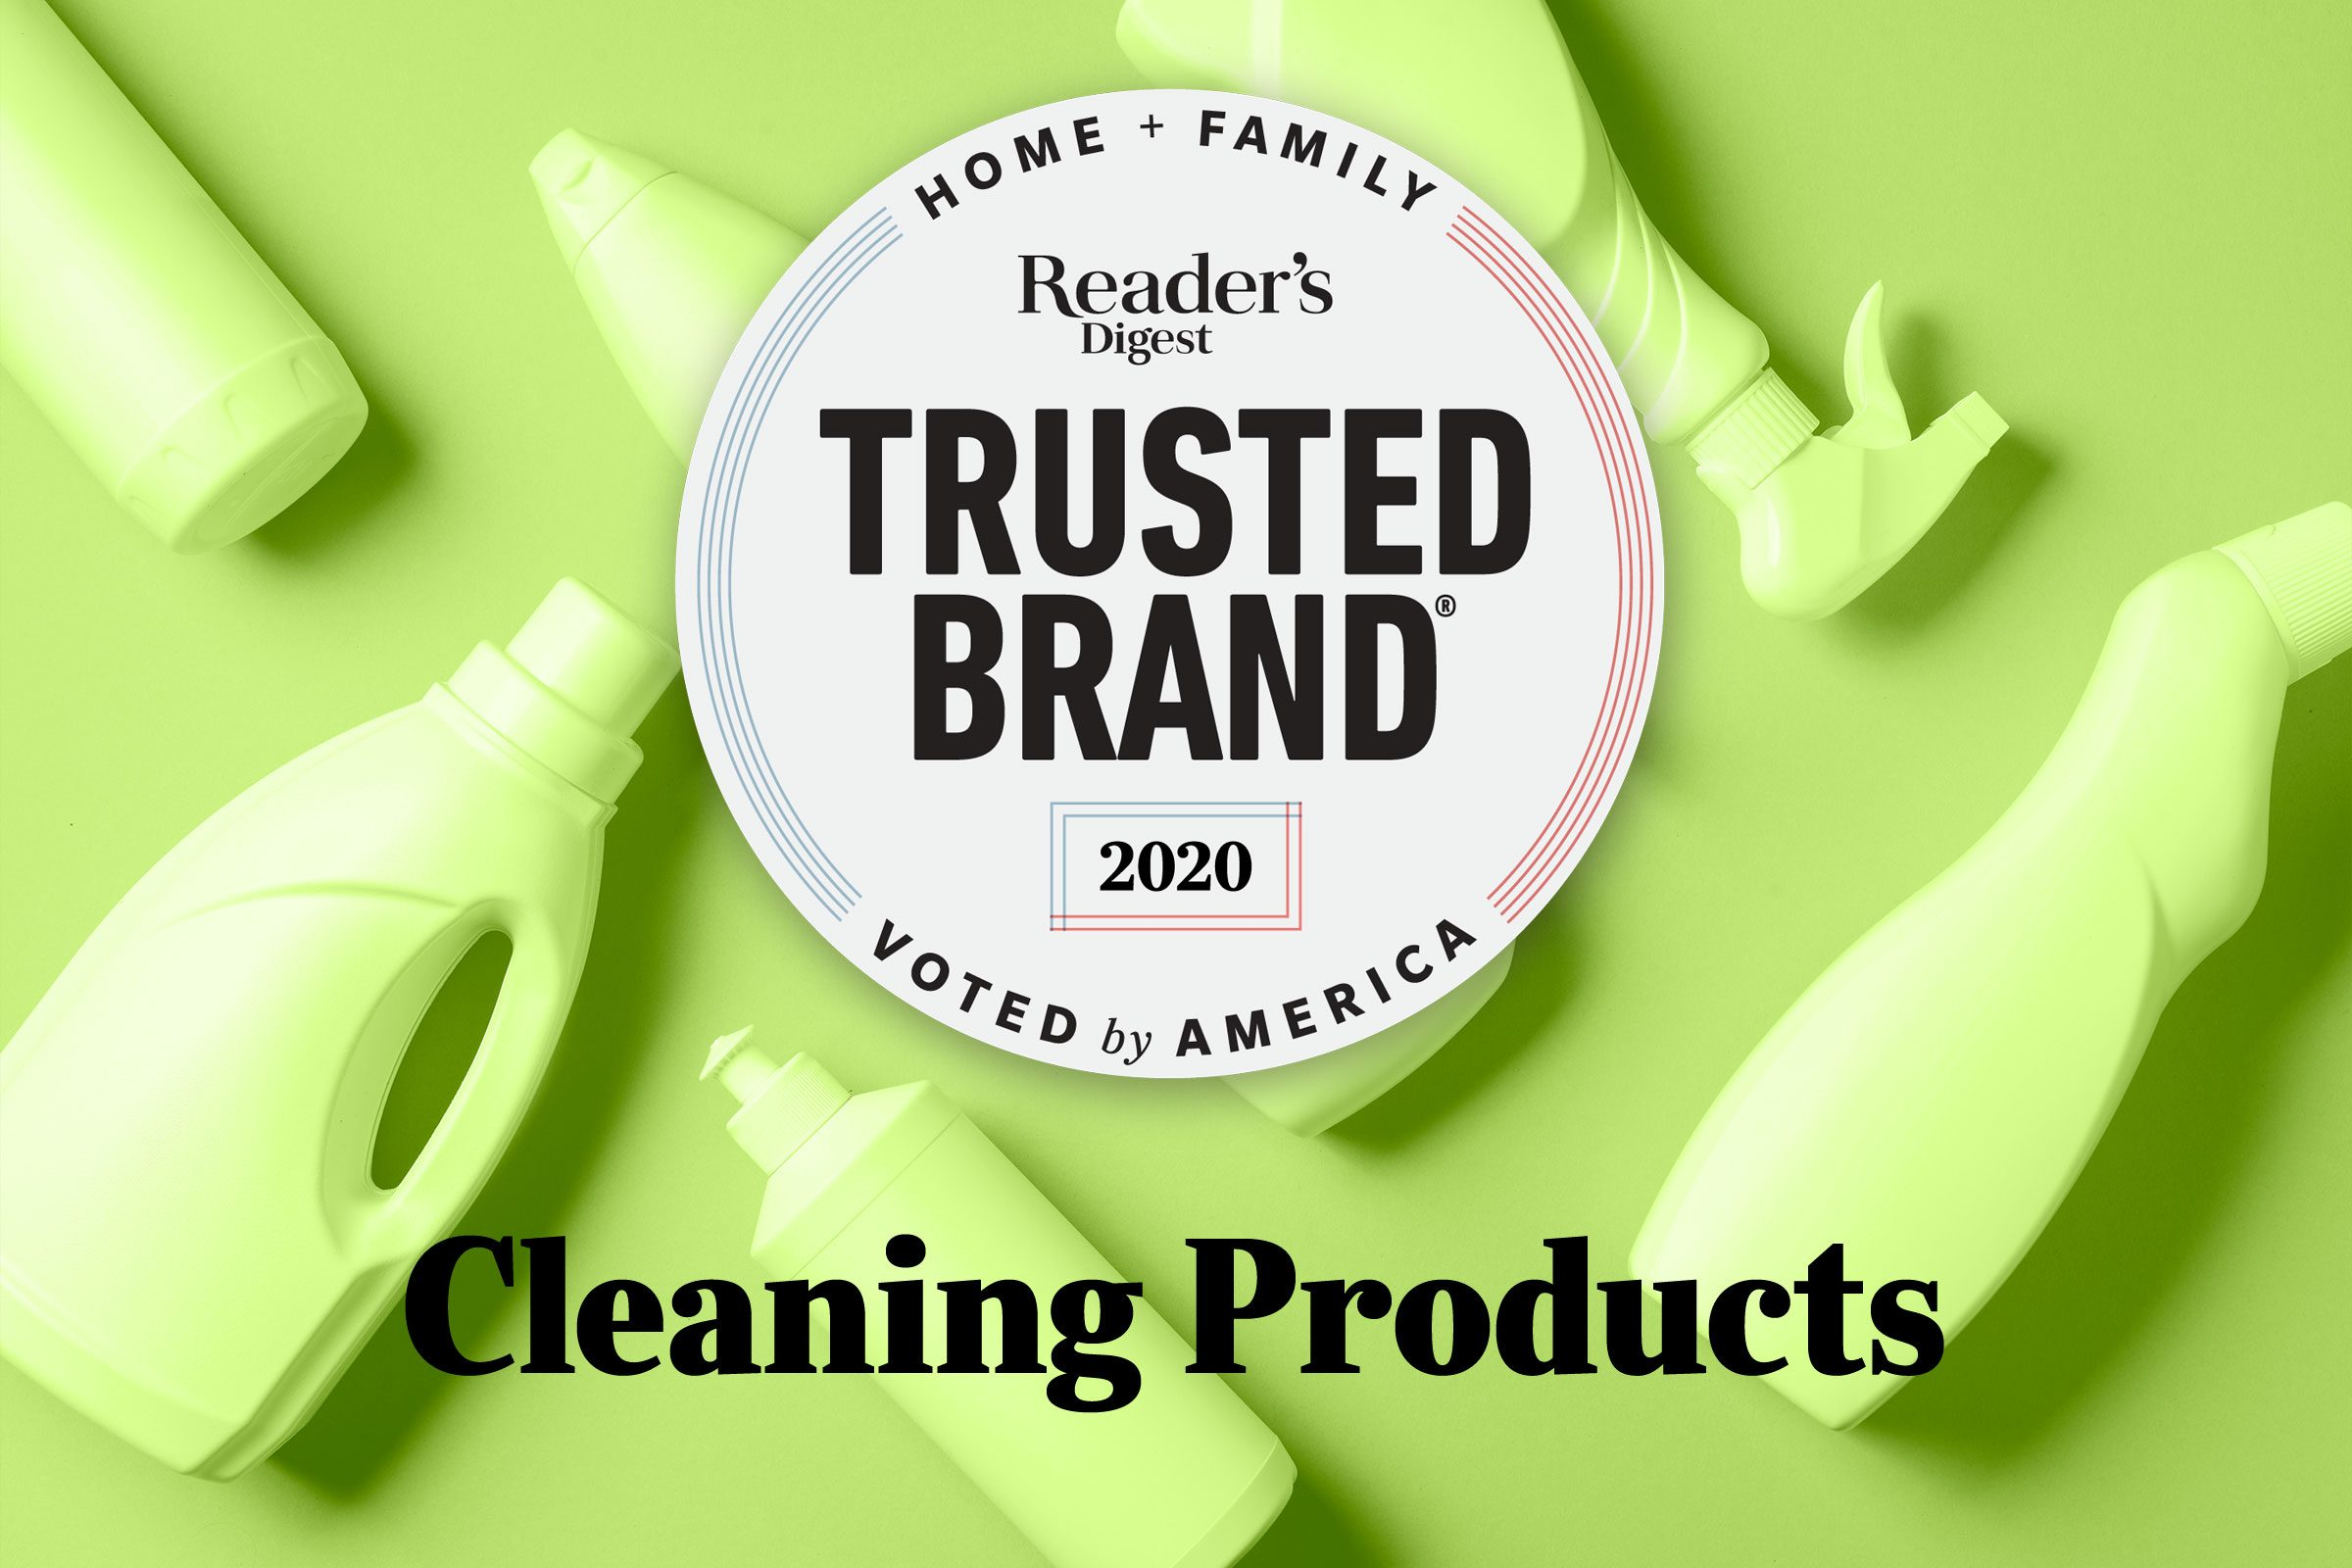 Reader's Digest Trusted Brands: Cleaning Products